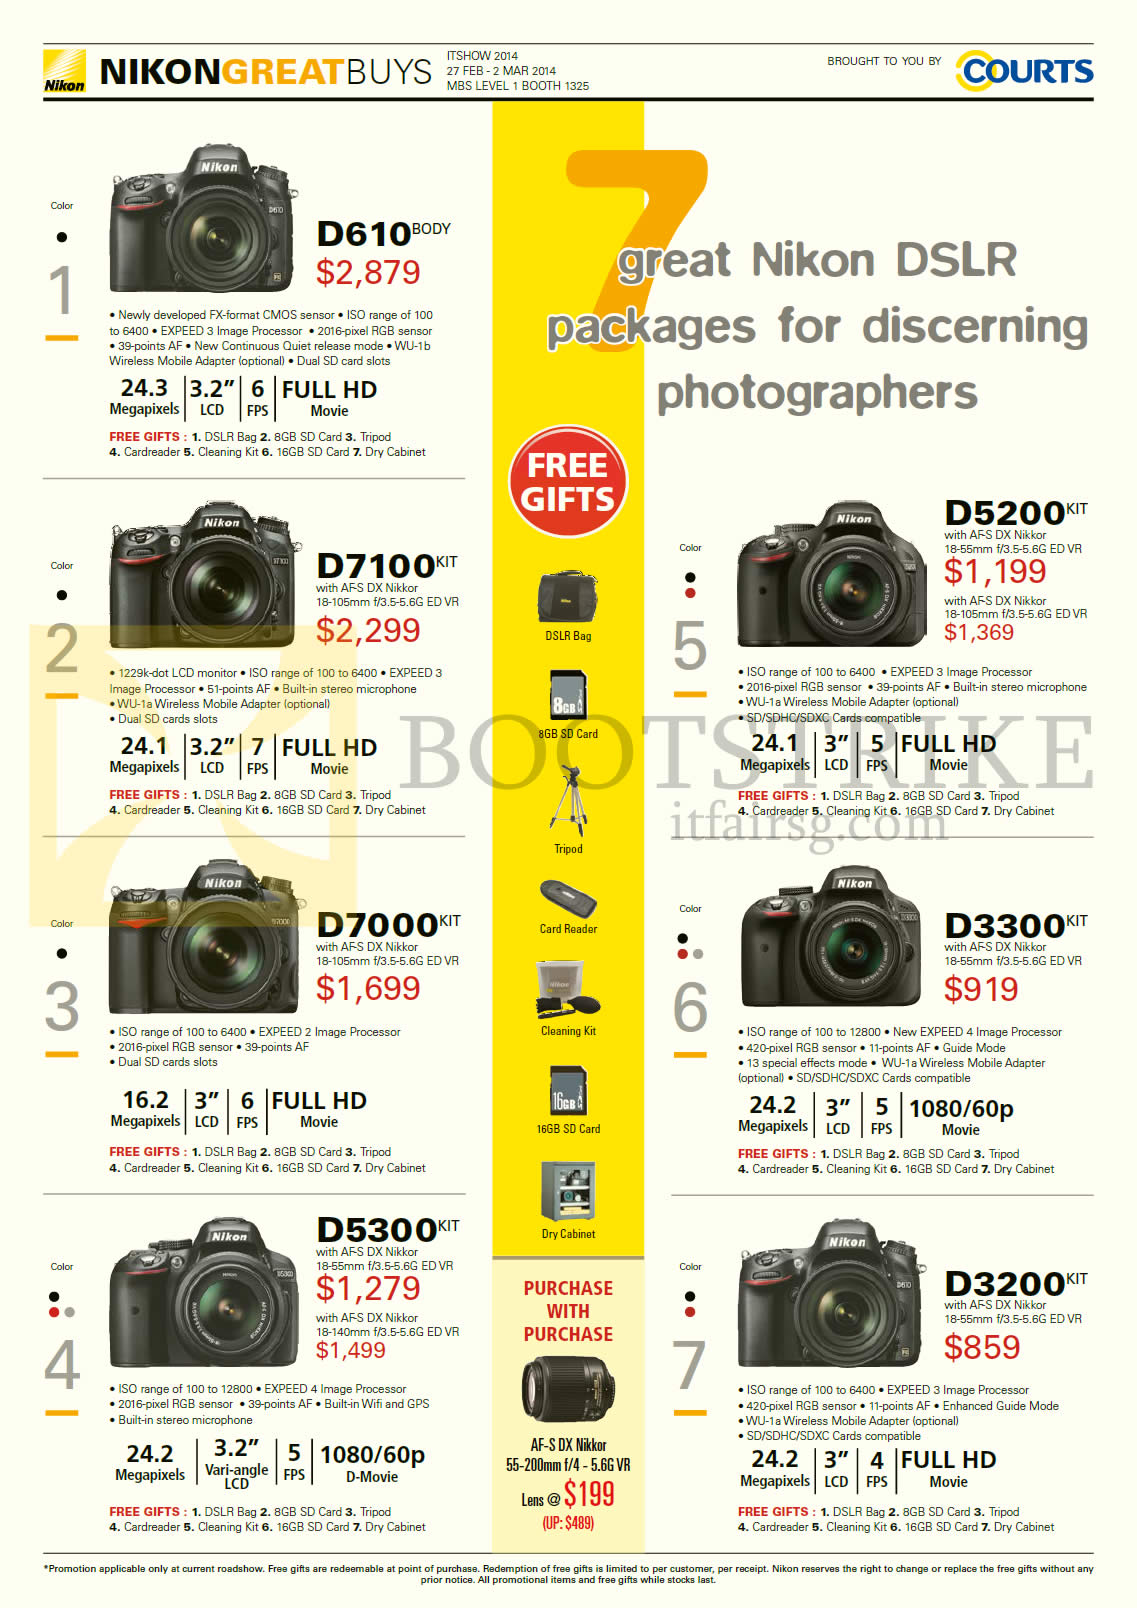 Camera List Of All Nikon Dslr Cameras nikon camera deal in town prices singapore digital cameras 1 v2 aw1 s1 coolpix p530 l29 s2800 s6700 l330 l830 click here